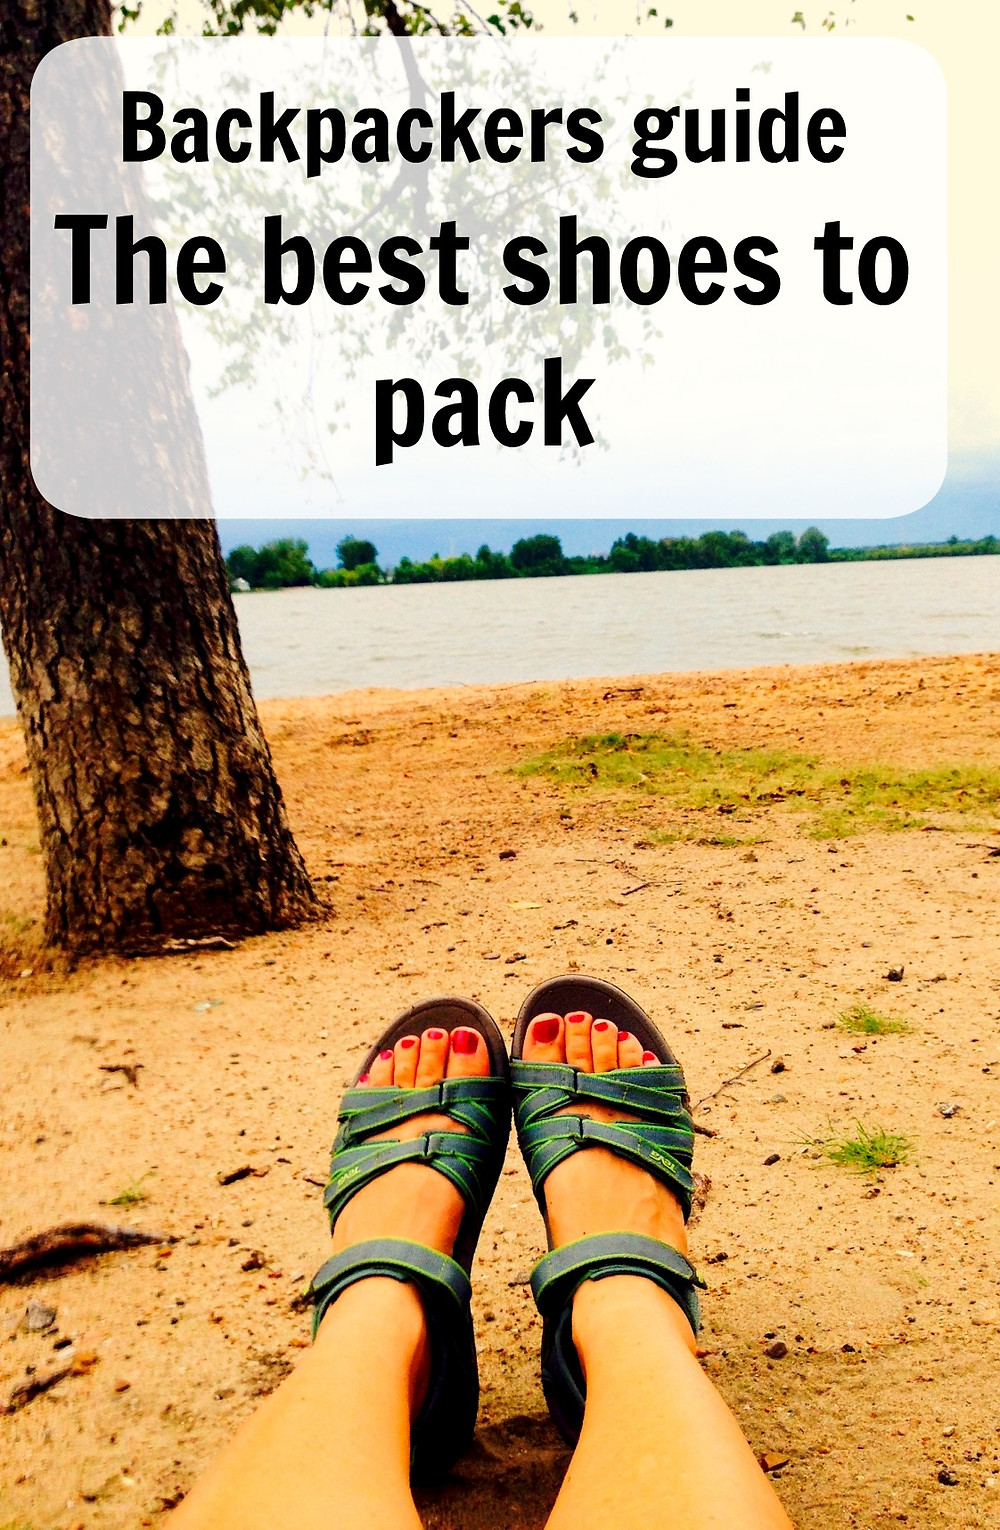 Backpacker guide - the best shoes to pack